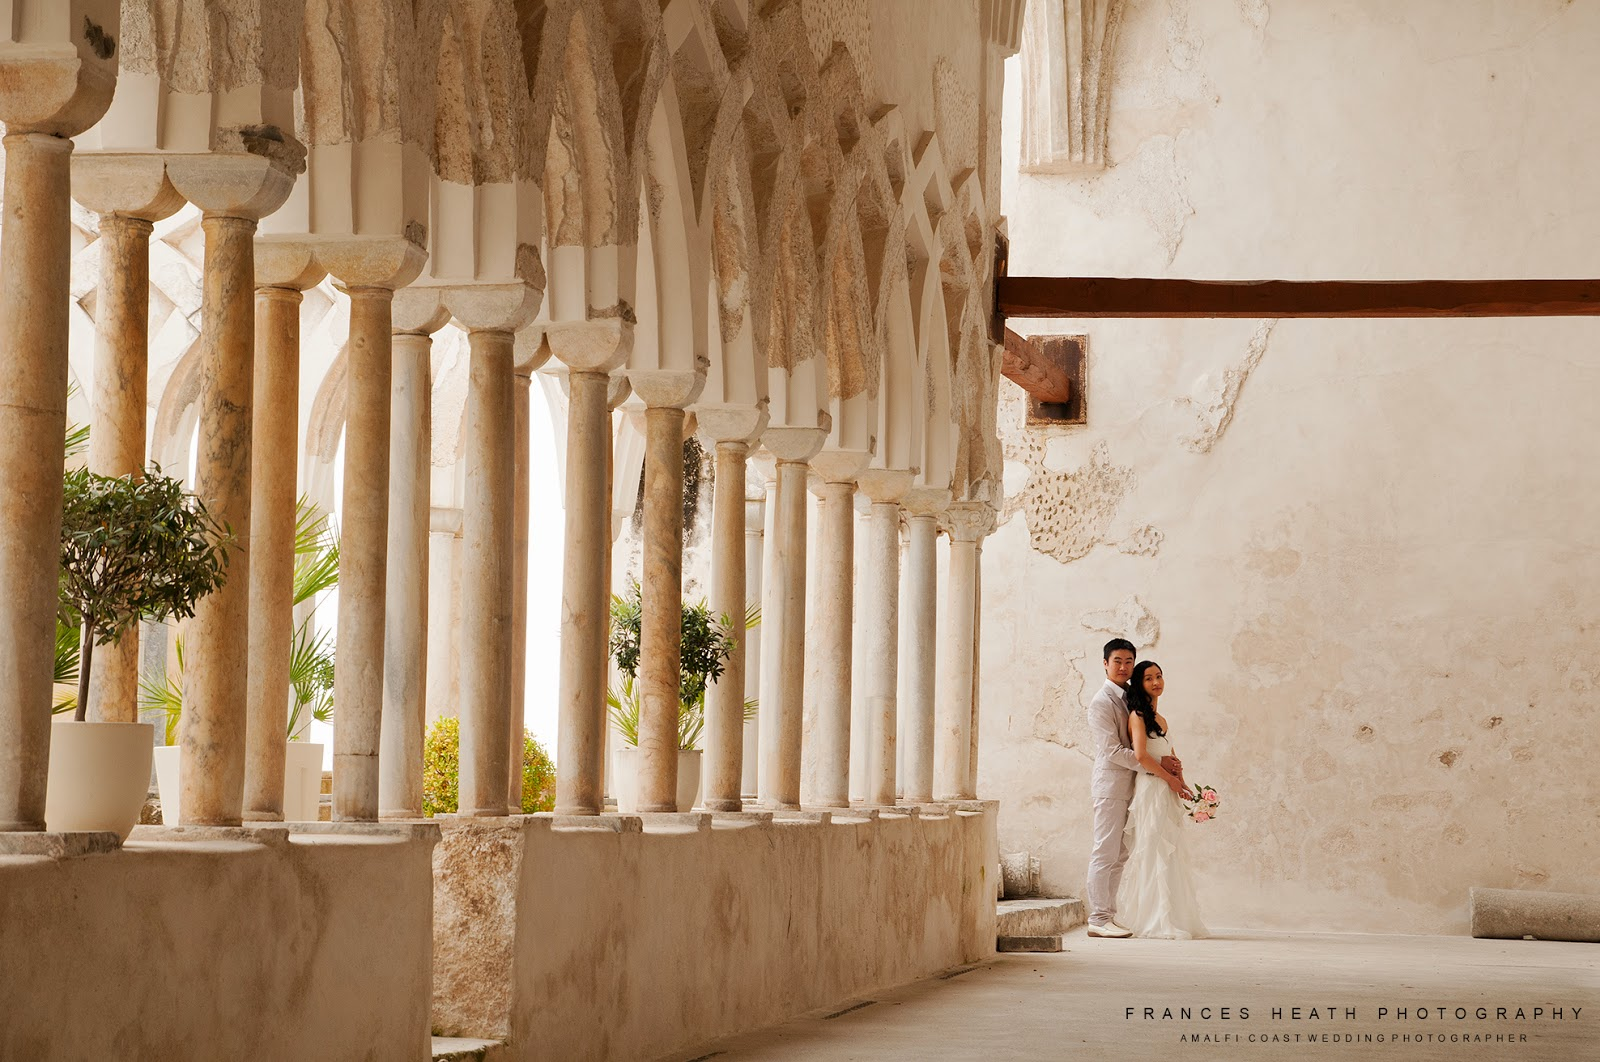 Bride and groom at Hotel Convento in Amalfi